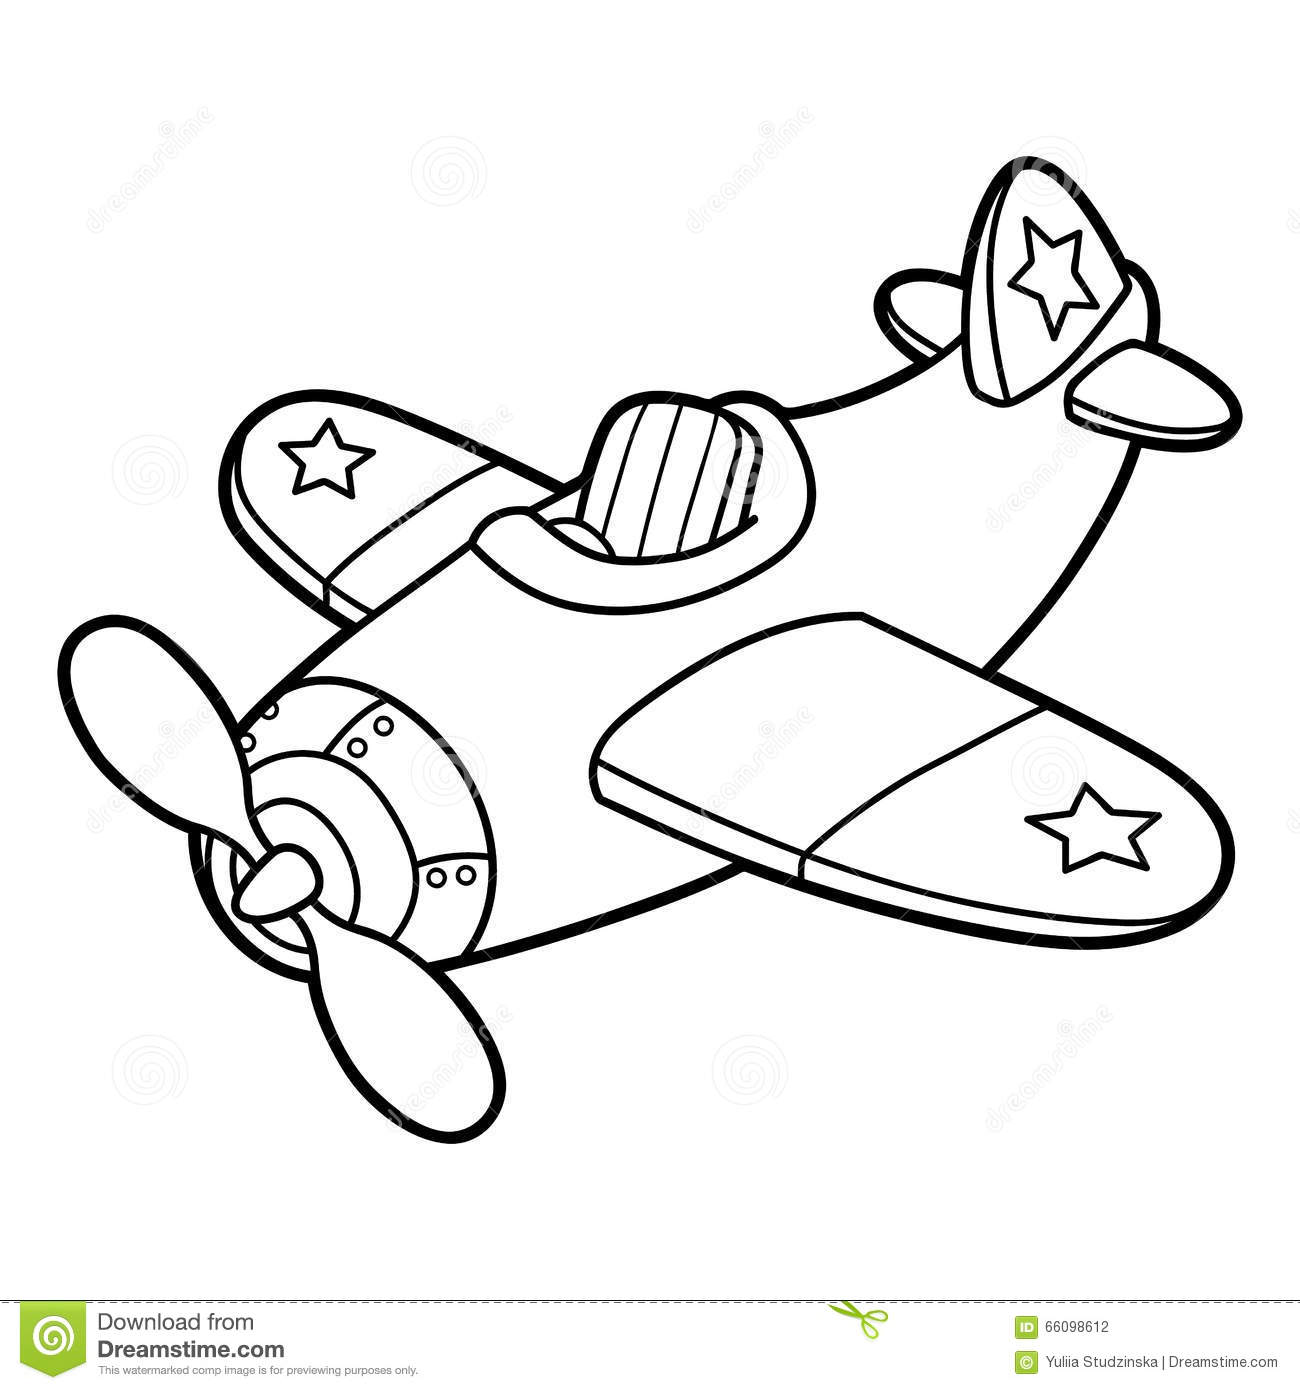 flying toy airplanes for adults with Military Coloring Pages Coloringfilmiinspector on 73462 Wicked Rc Su 27 A moreover Lego City 3181 Passenger Plane Rare New Htf additionally How Likely Are You To Stick To Your New Years Resolution likewise 32805566387 together with Showthread.